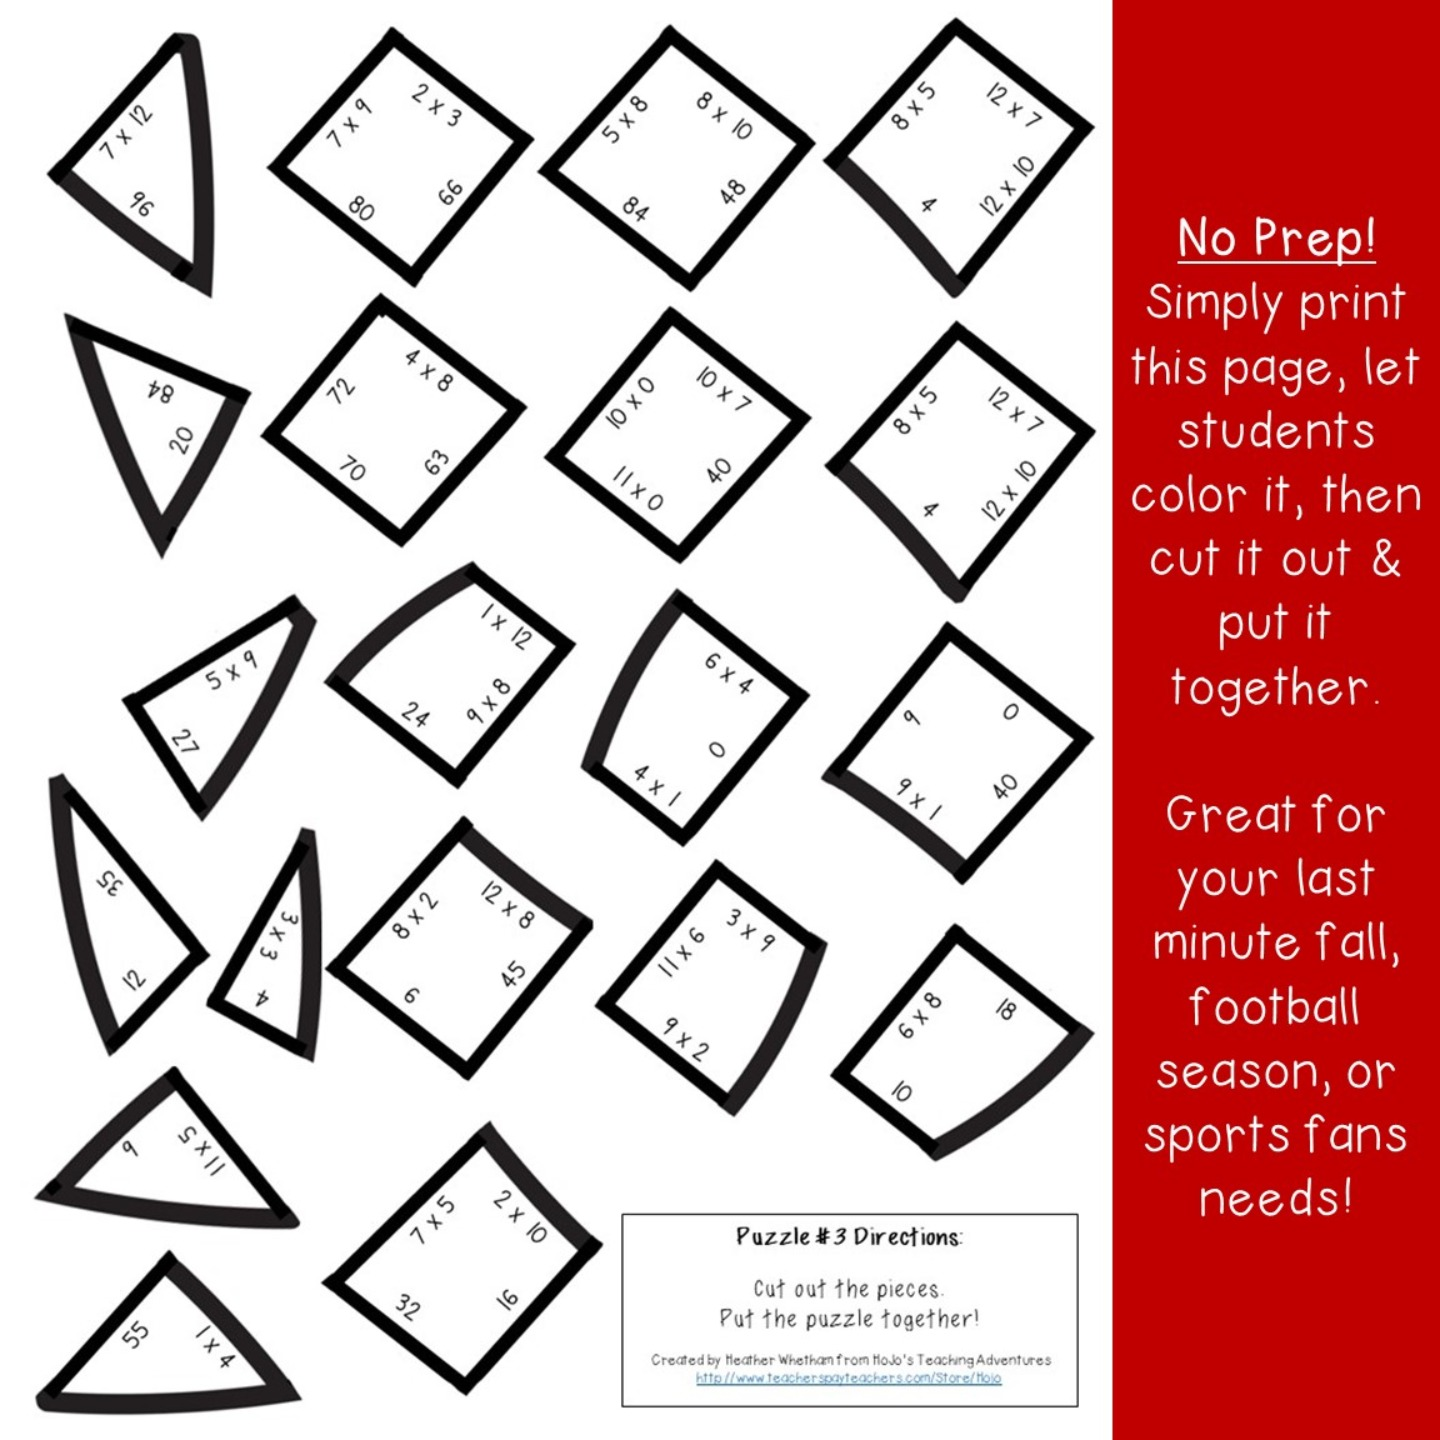 DIVISION Football Puzzles for 3rd, 4th, or 5th Grade